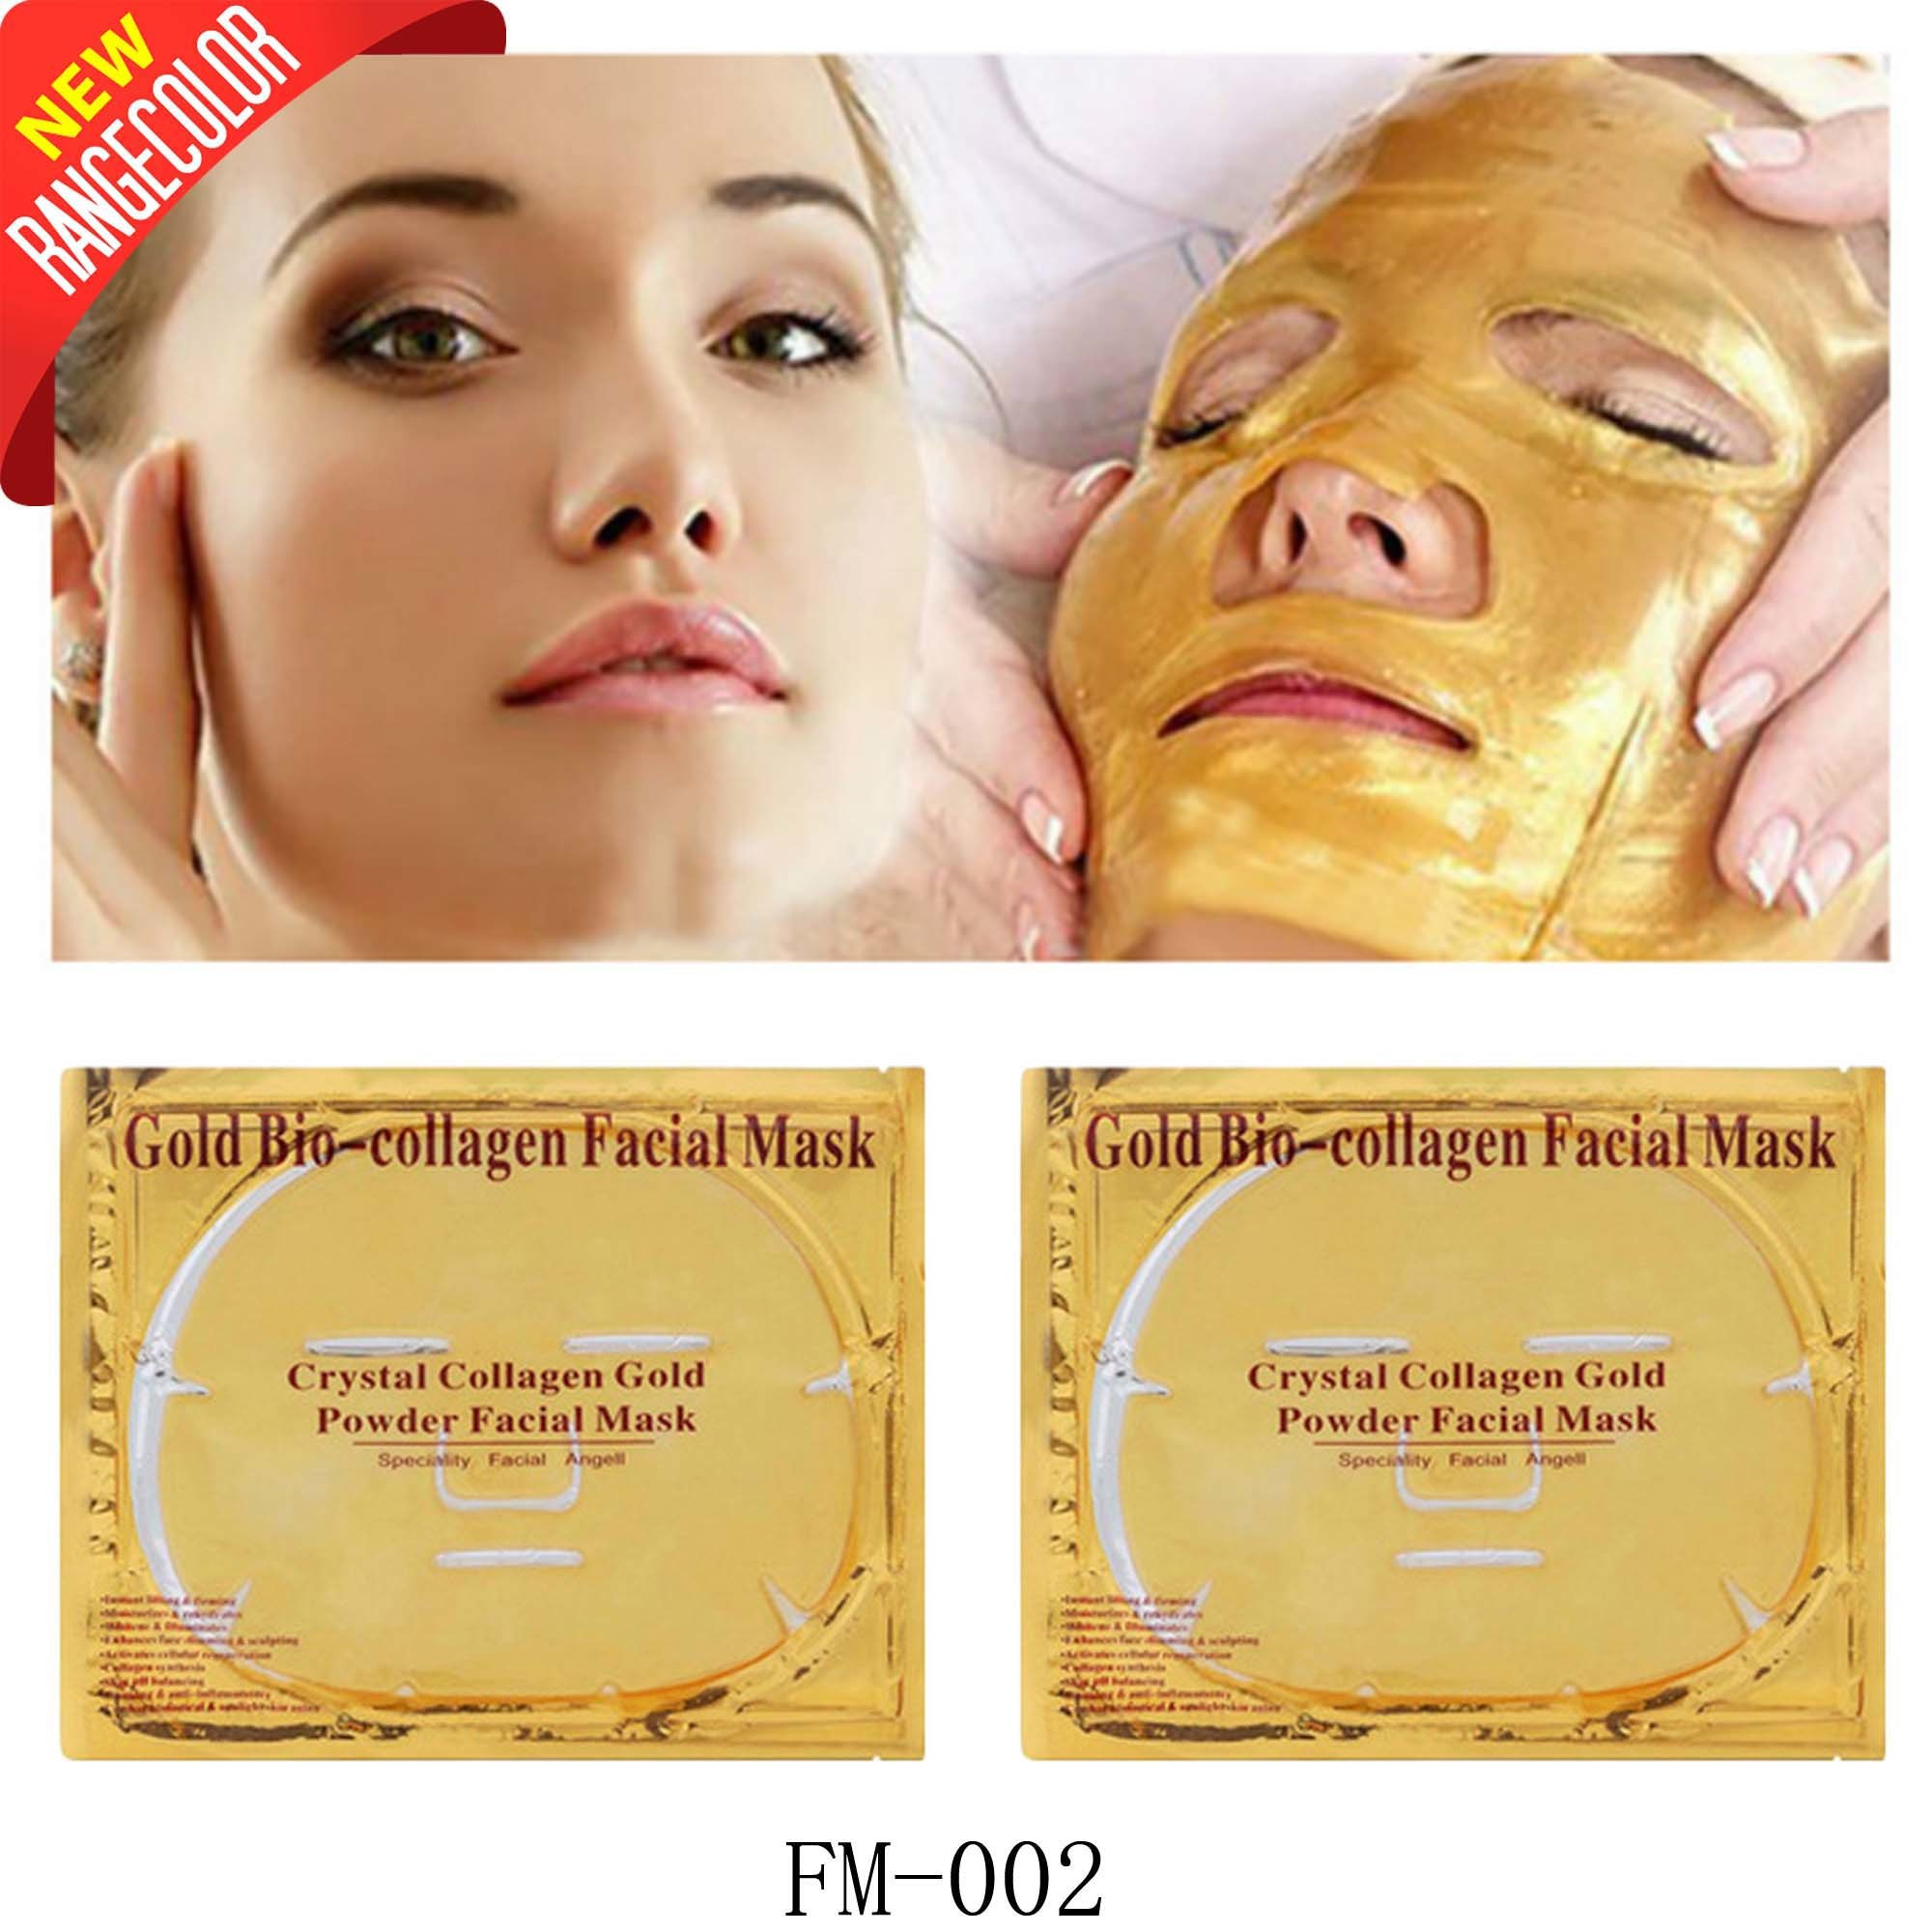 Top Anti-Wrinkle Firming 24K Gold Collagen Crystal Mask pictures & photos